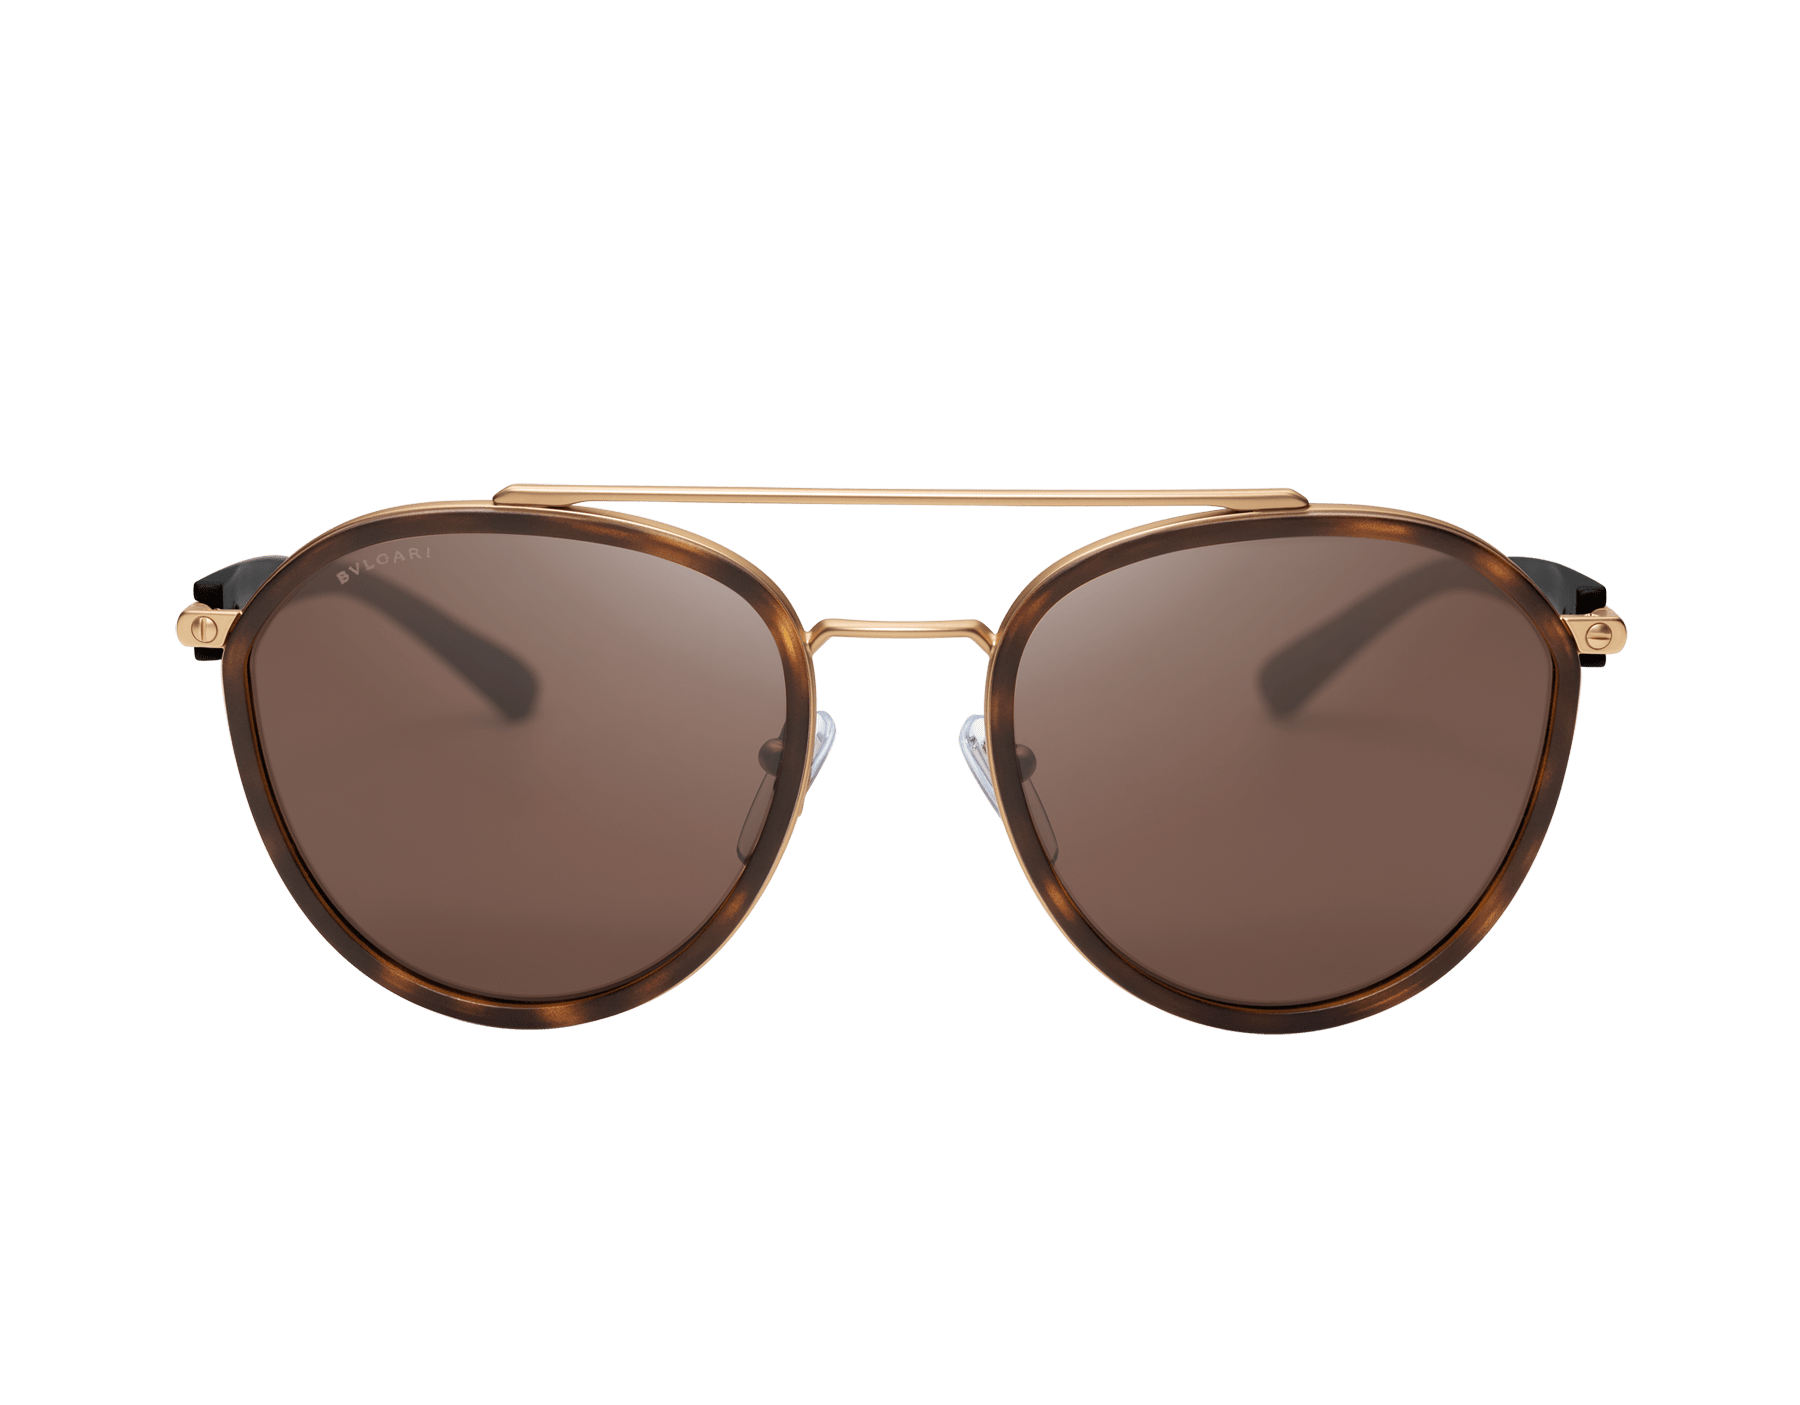 Bvlgari Bvlgari metal rounded double bridge sunglasses. 904042 image 2